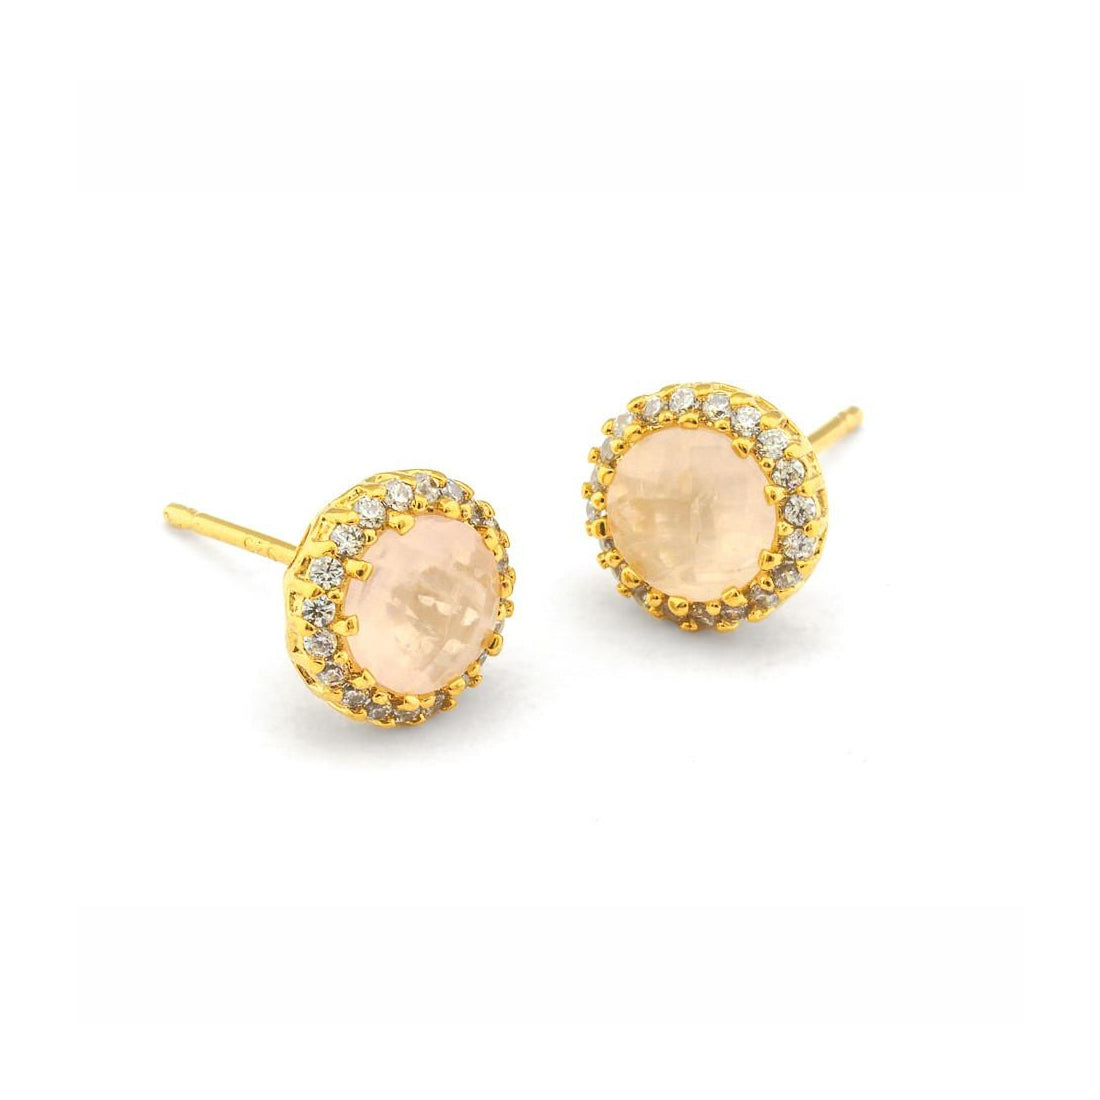 Moon Colored Glass and CZ Stud Earrings, Gold Tone, by Tai Design